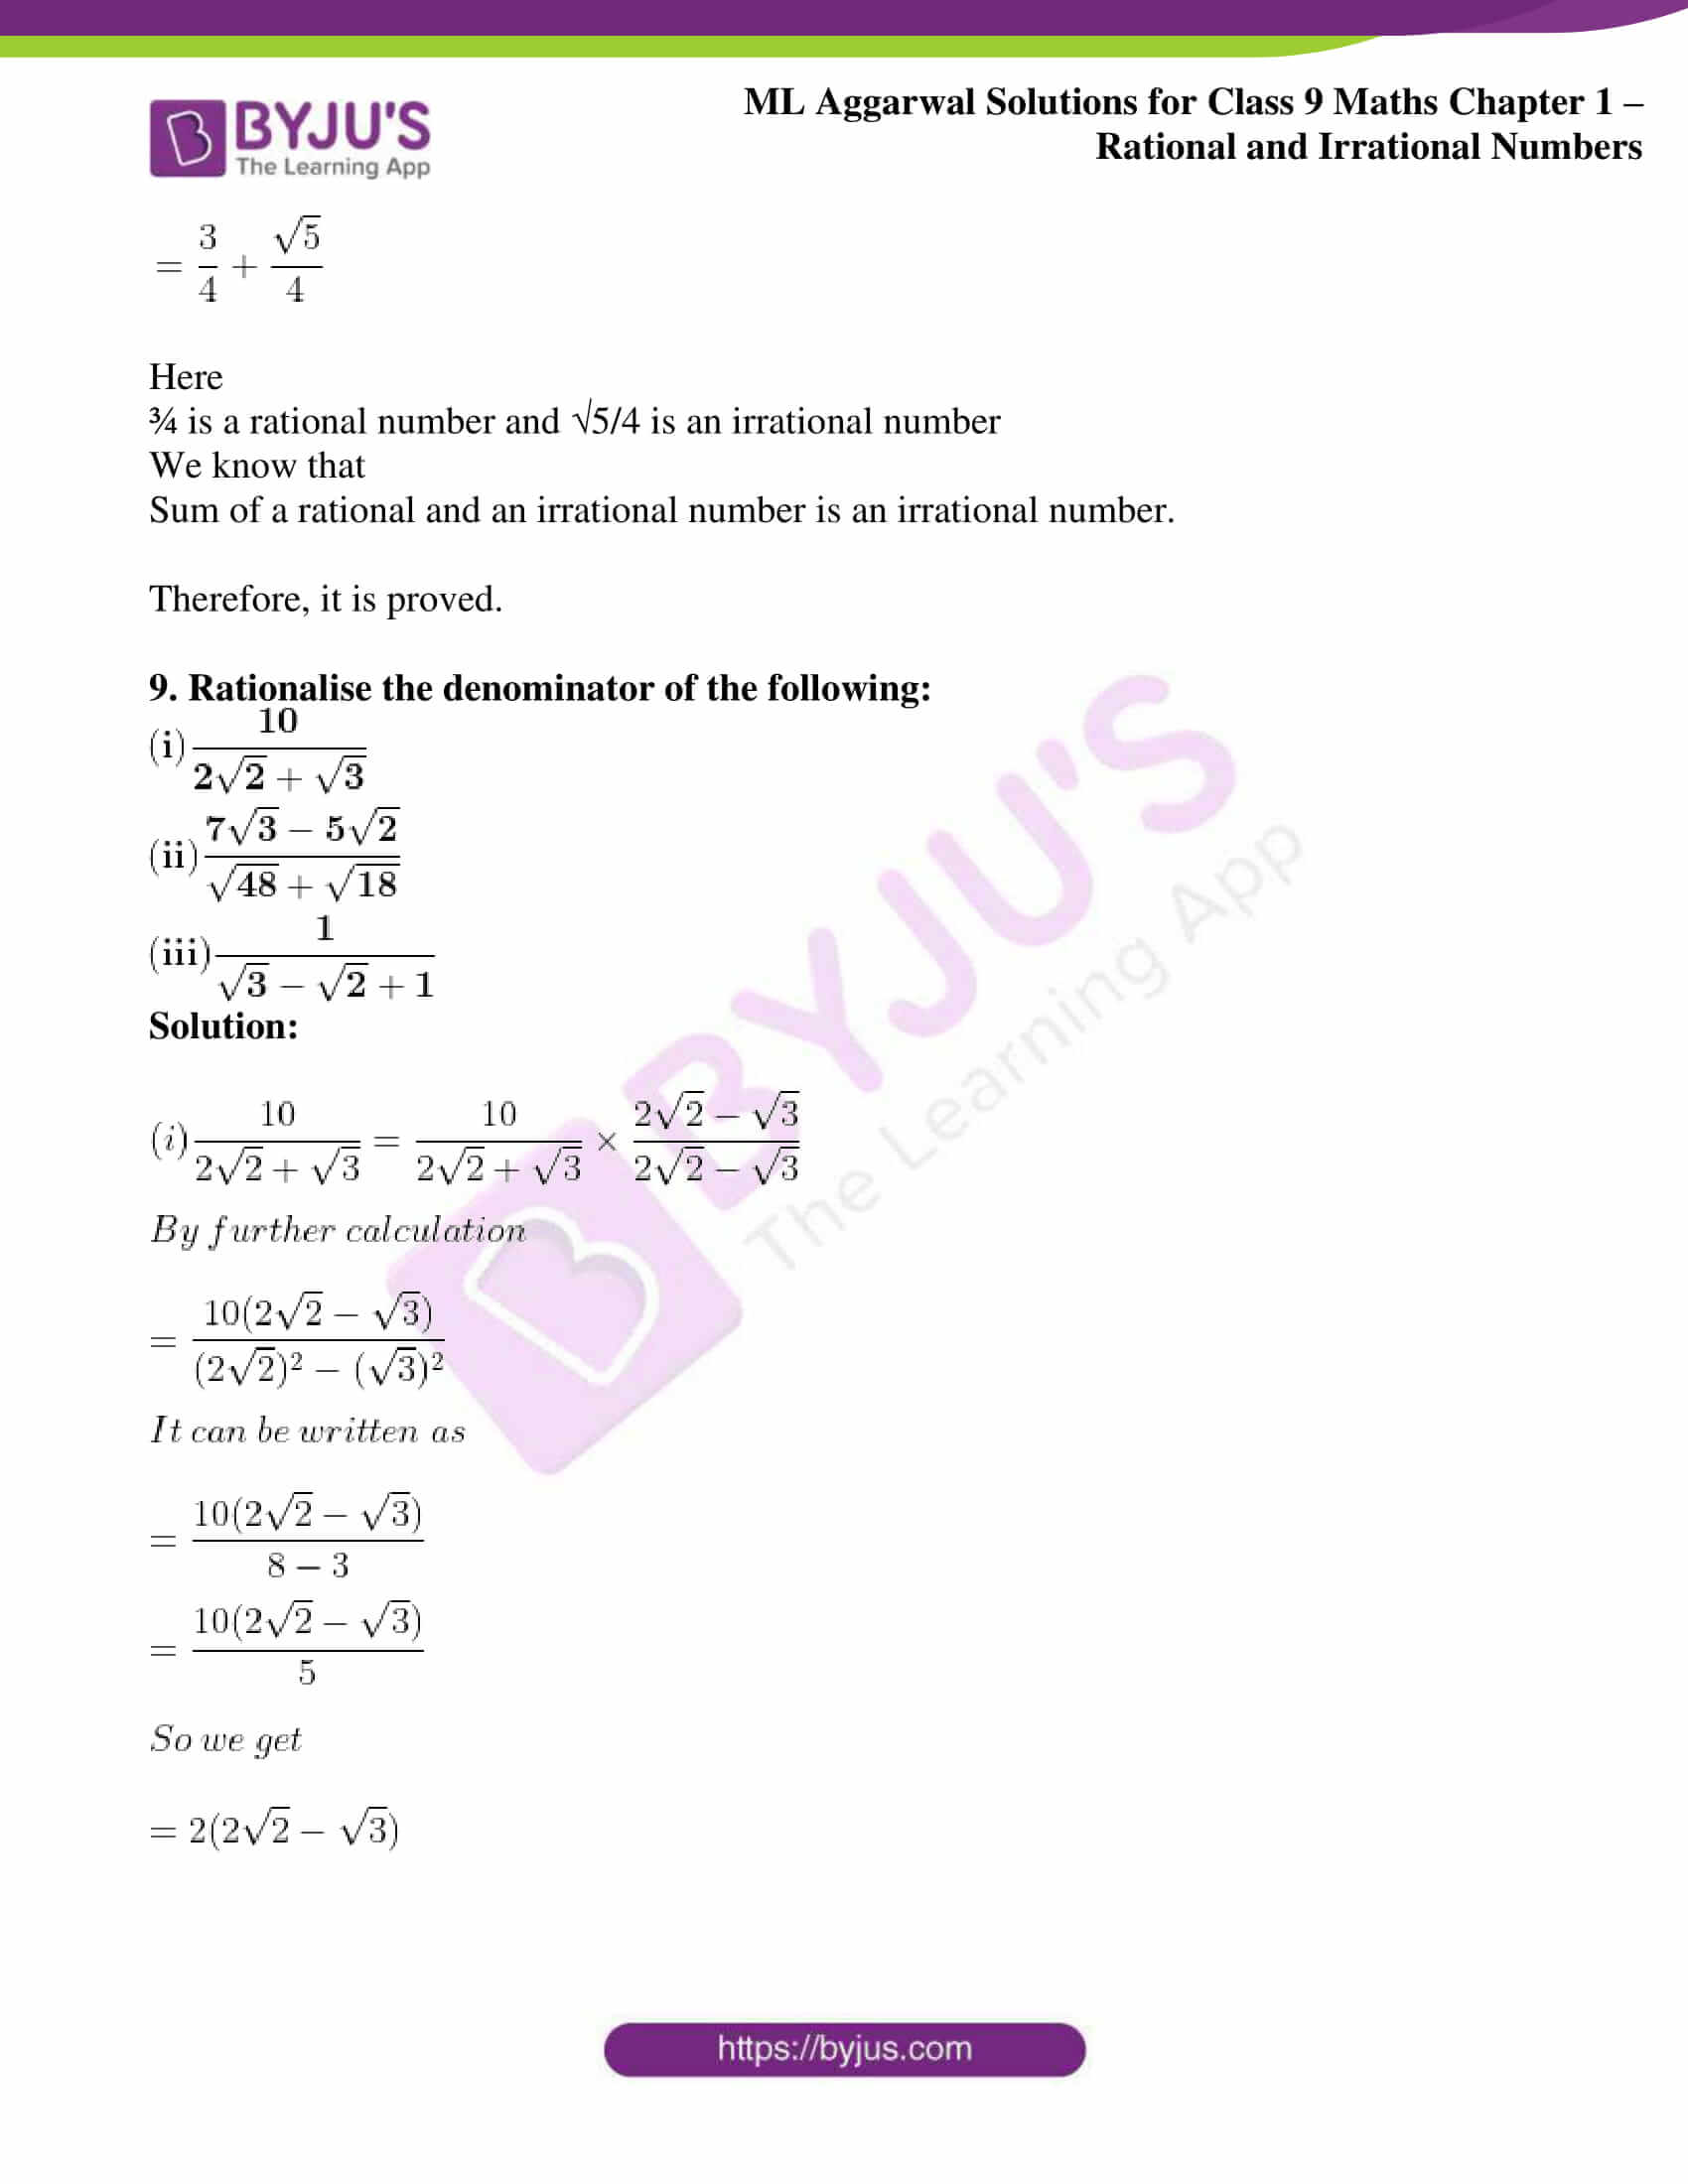 ml aggarwal solutions for class 9 maths chapter 1 70